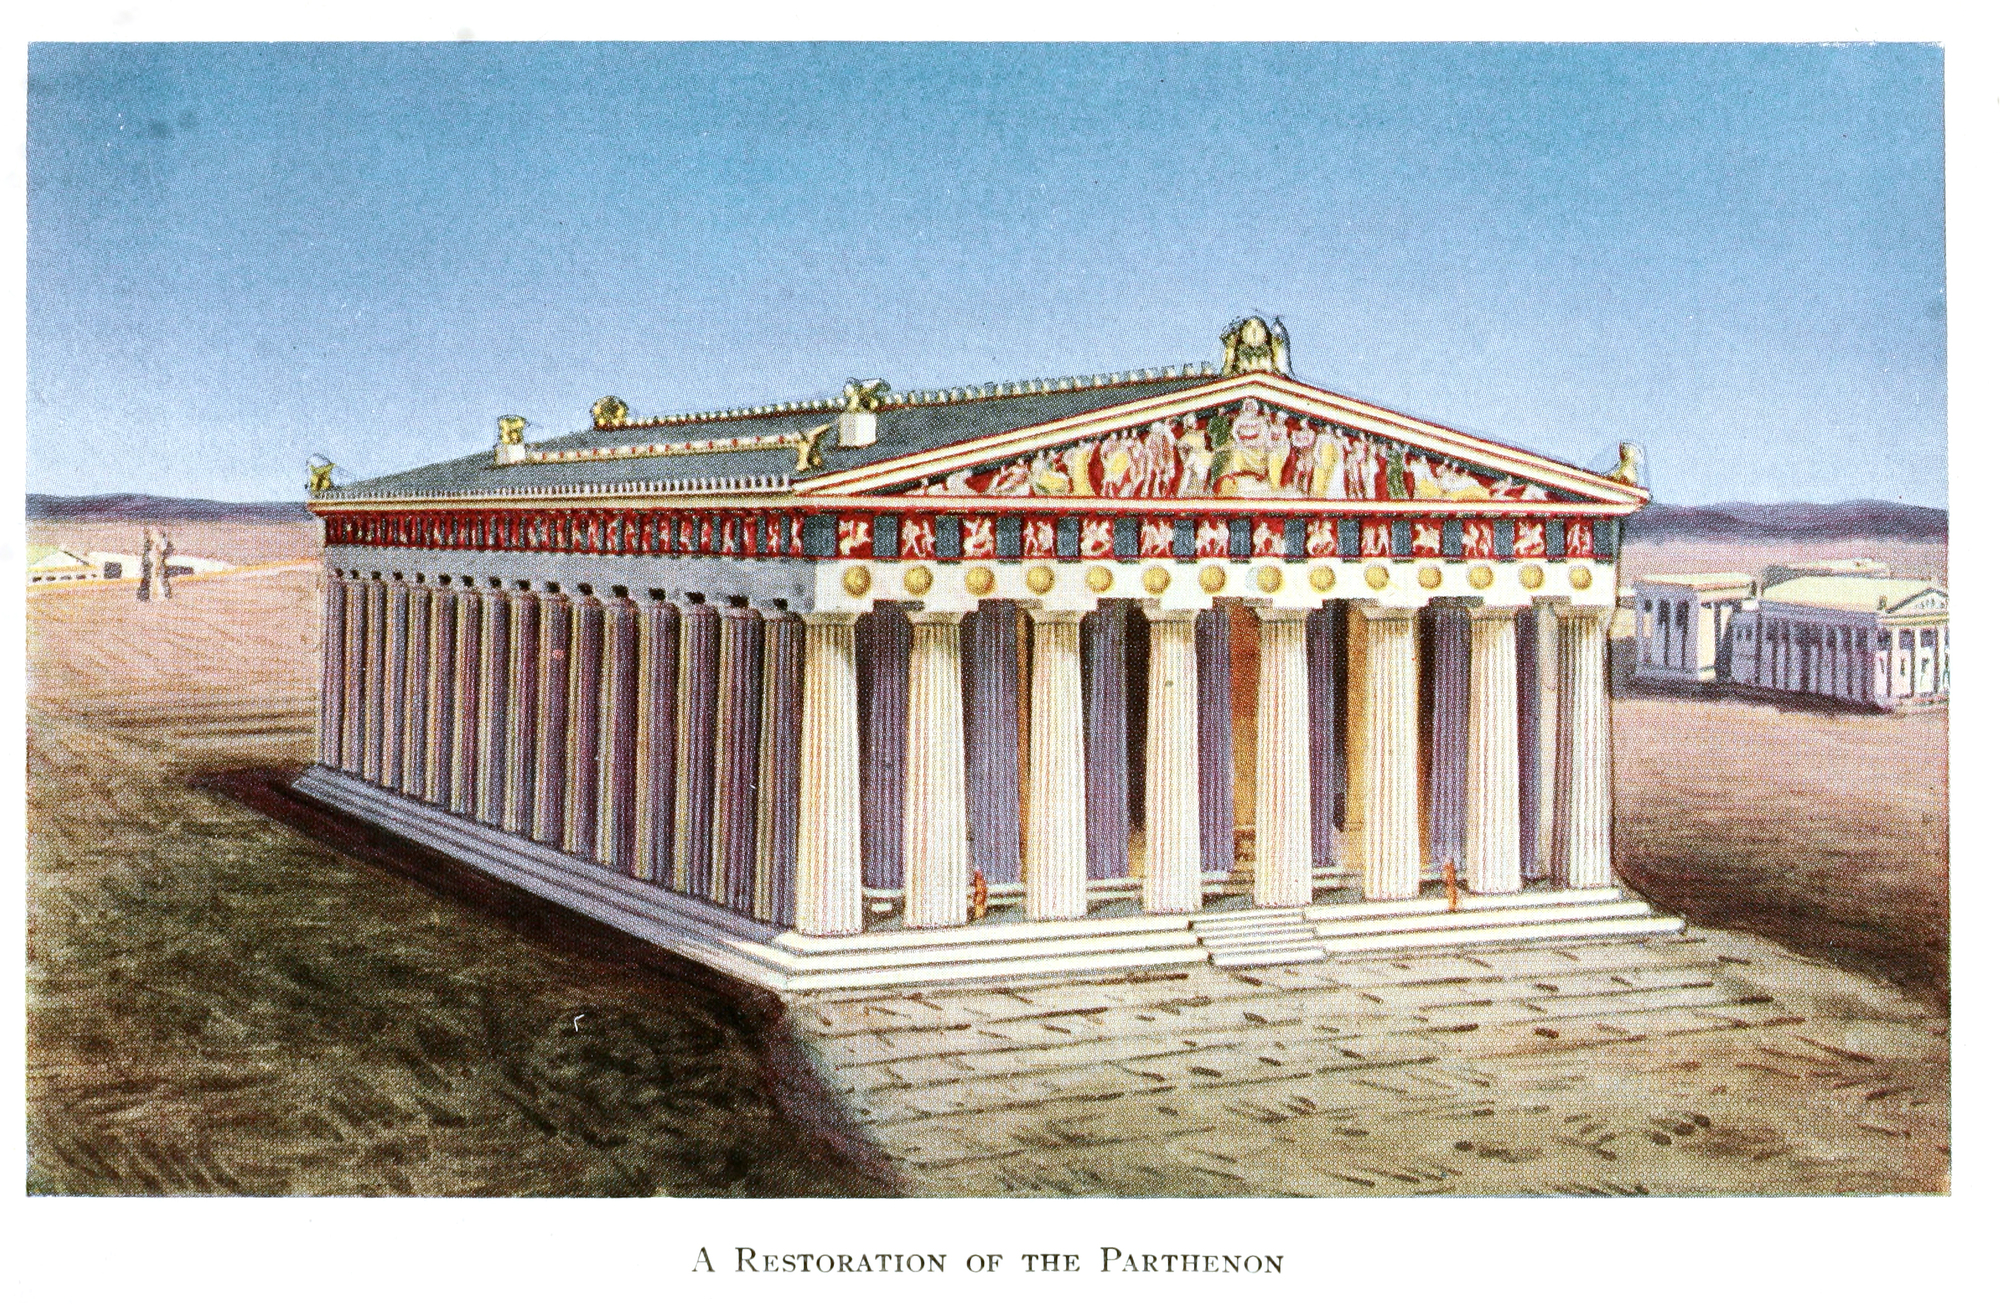 An Artistic Reconstruction Of The Parthenon As It Appeared In Fifth Century BC While